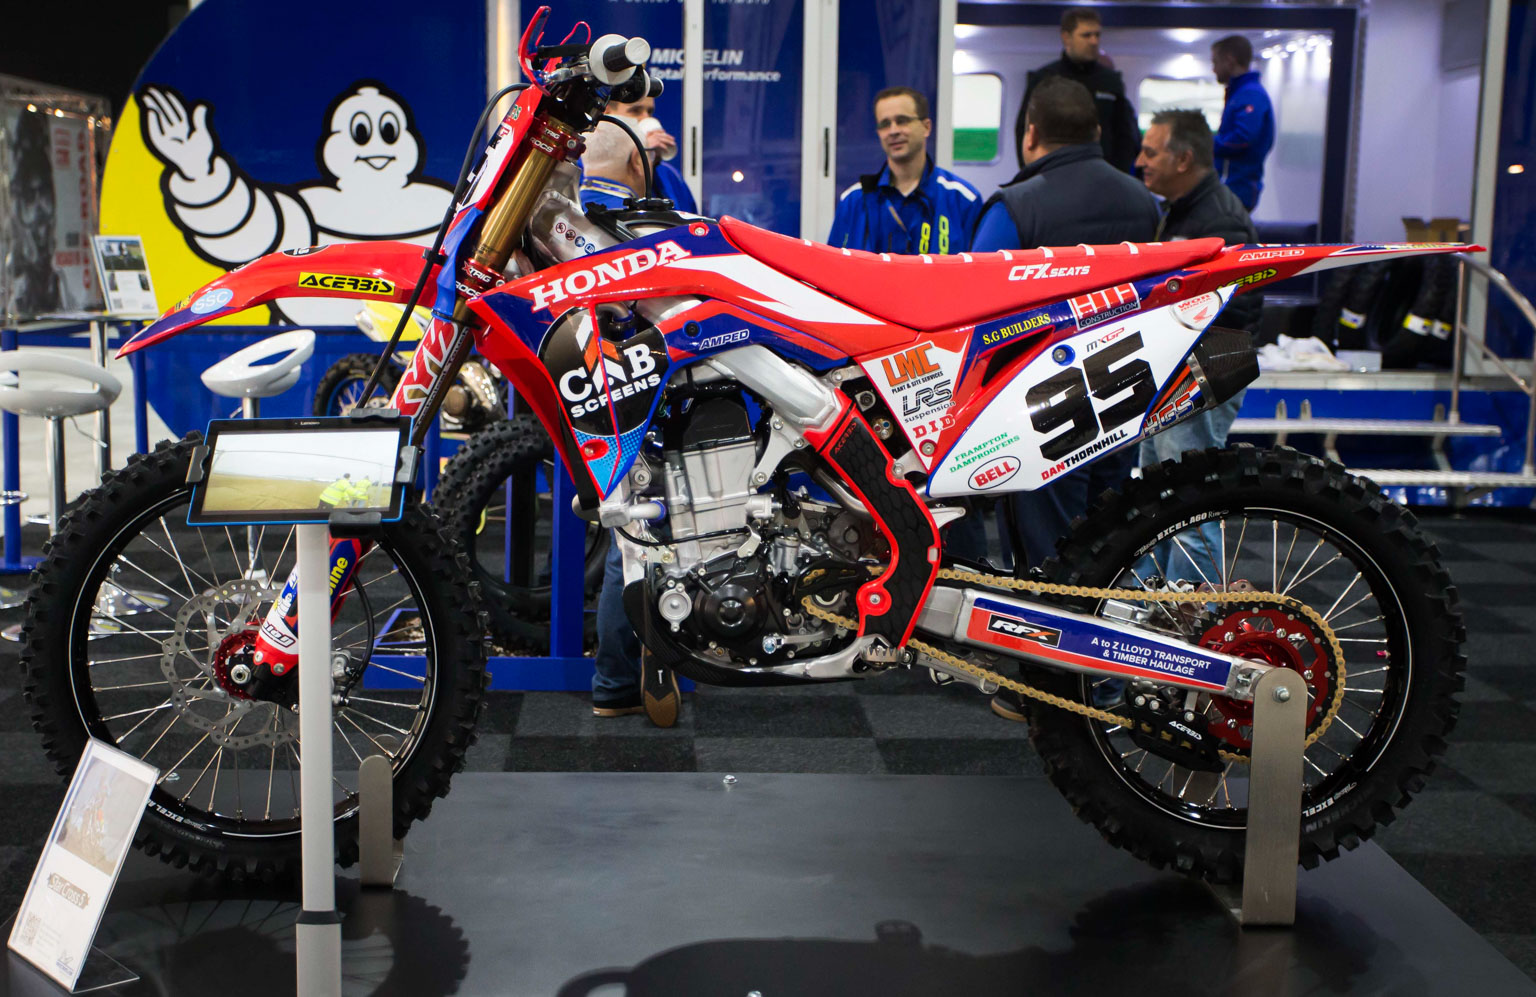 No race outing yet for the team's CRF450s